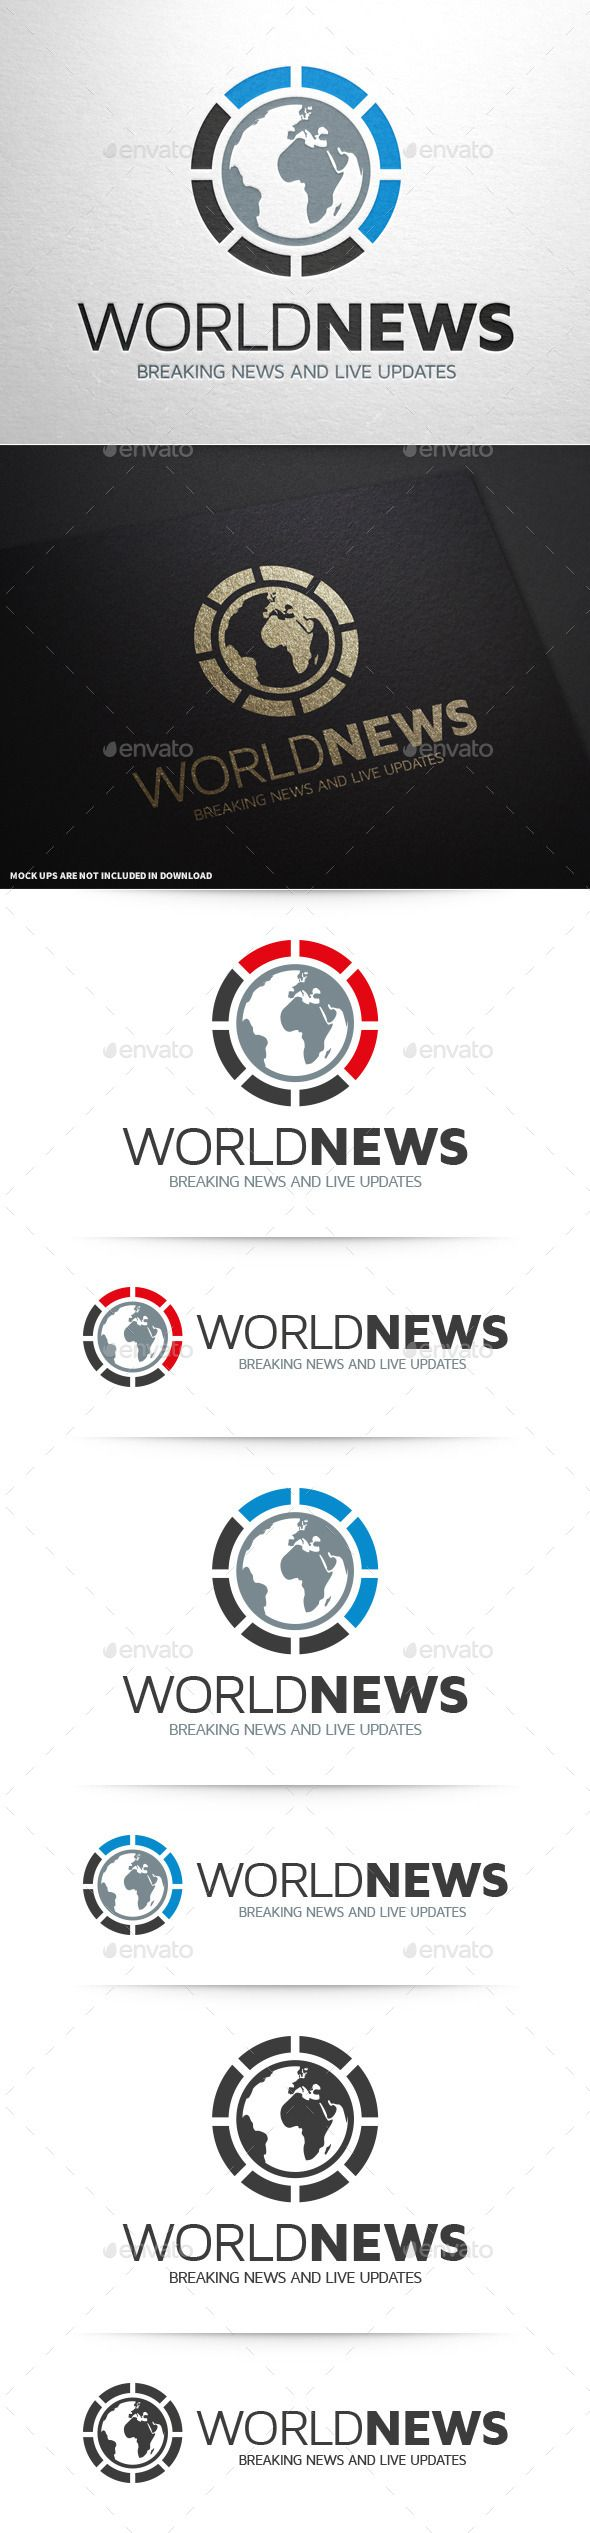 World News Logo Template | Pinterest | Logo templates, Logos and Globe